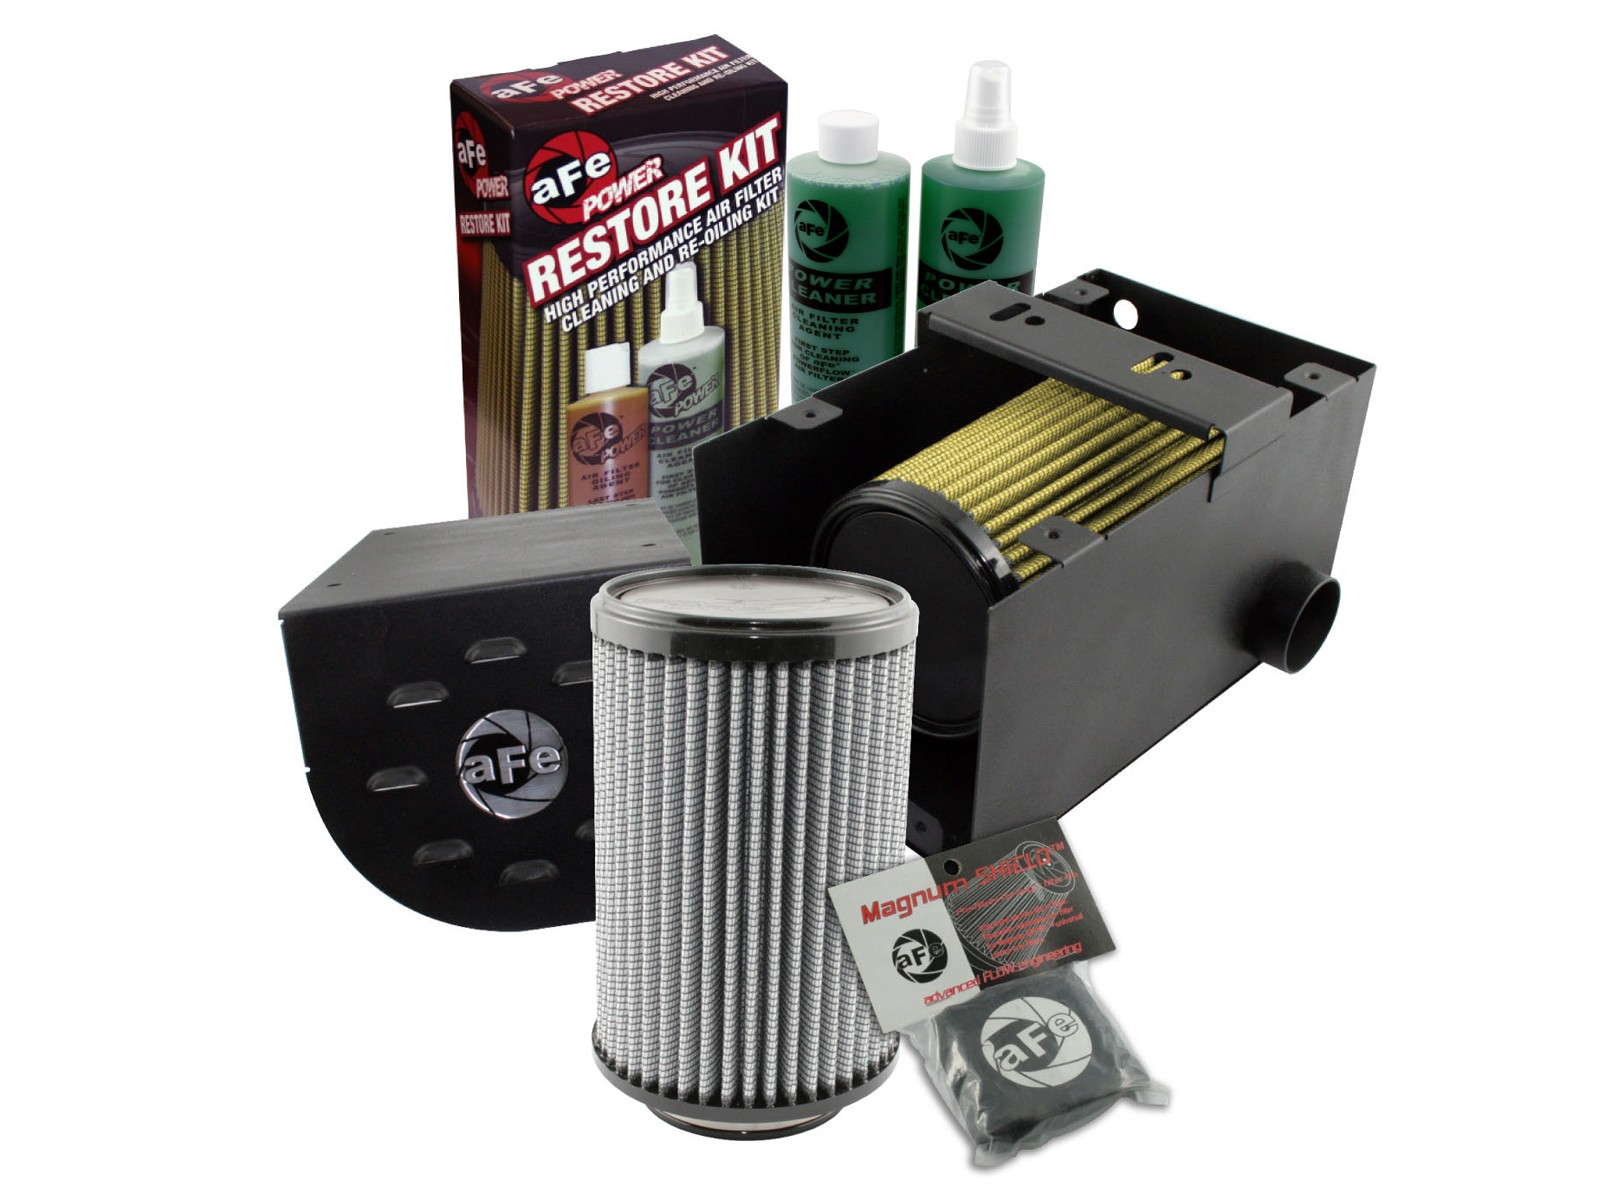 aFe POWER 85-10024 Aries Powersport Stage-1 Pro GUARD7 Cold Air Intake System